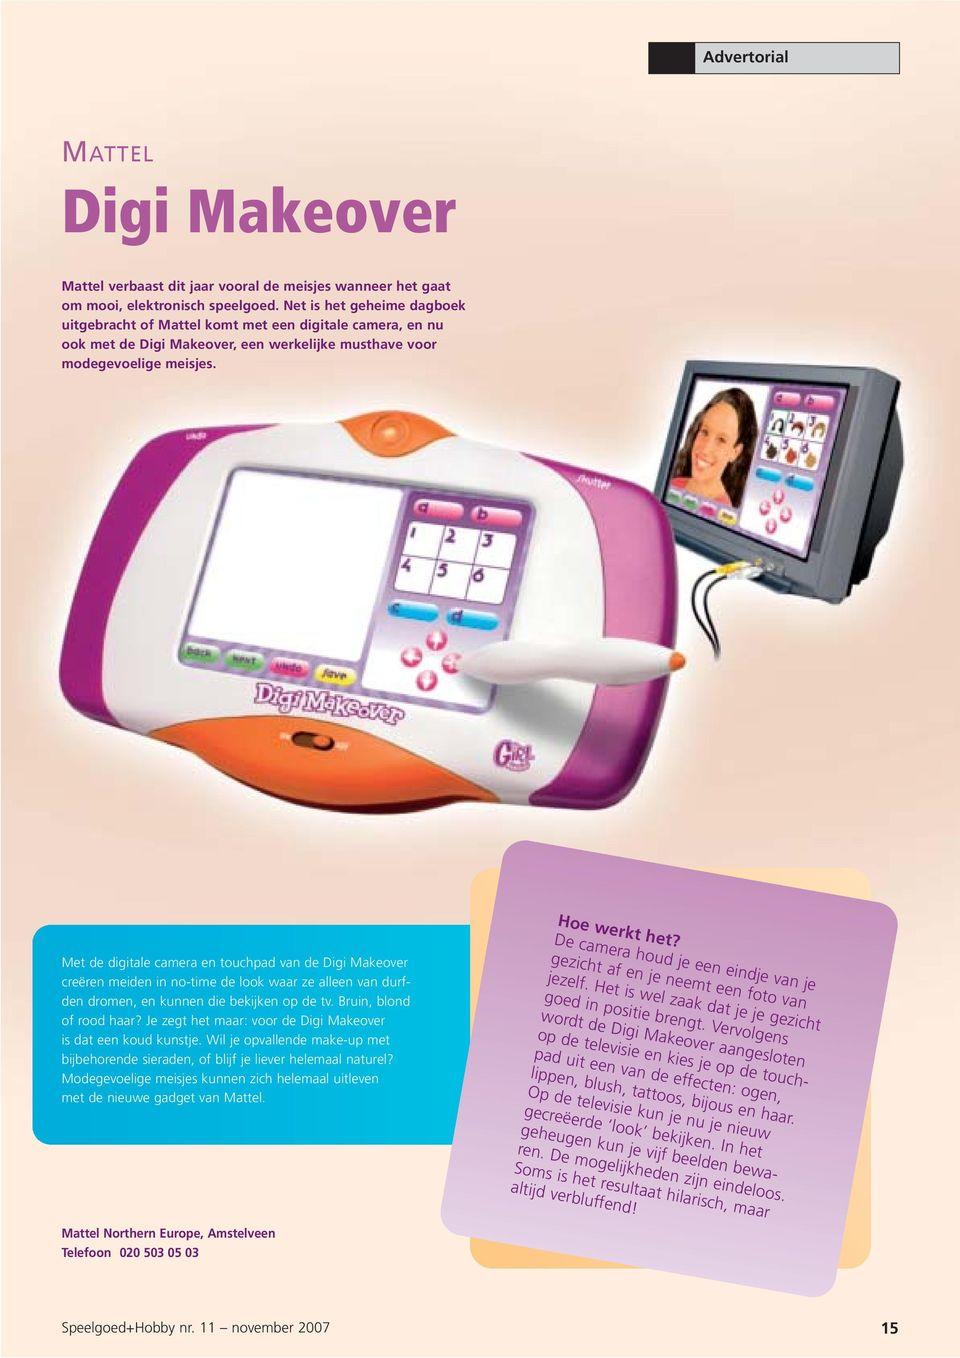 Met de digitale camera en touchpad van de Digi Makeover creëren meiden in no-time de look waar ze alleen van durfden dromen, en kunnen die bekijken op de tv. Bruin, blond of rood haar?